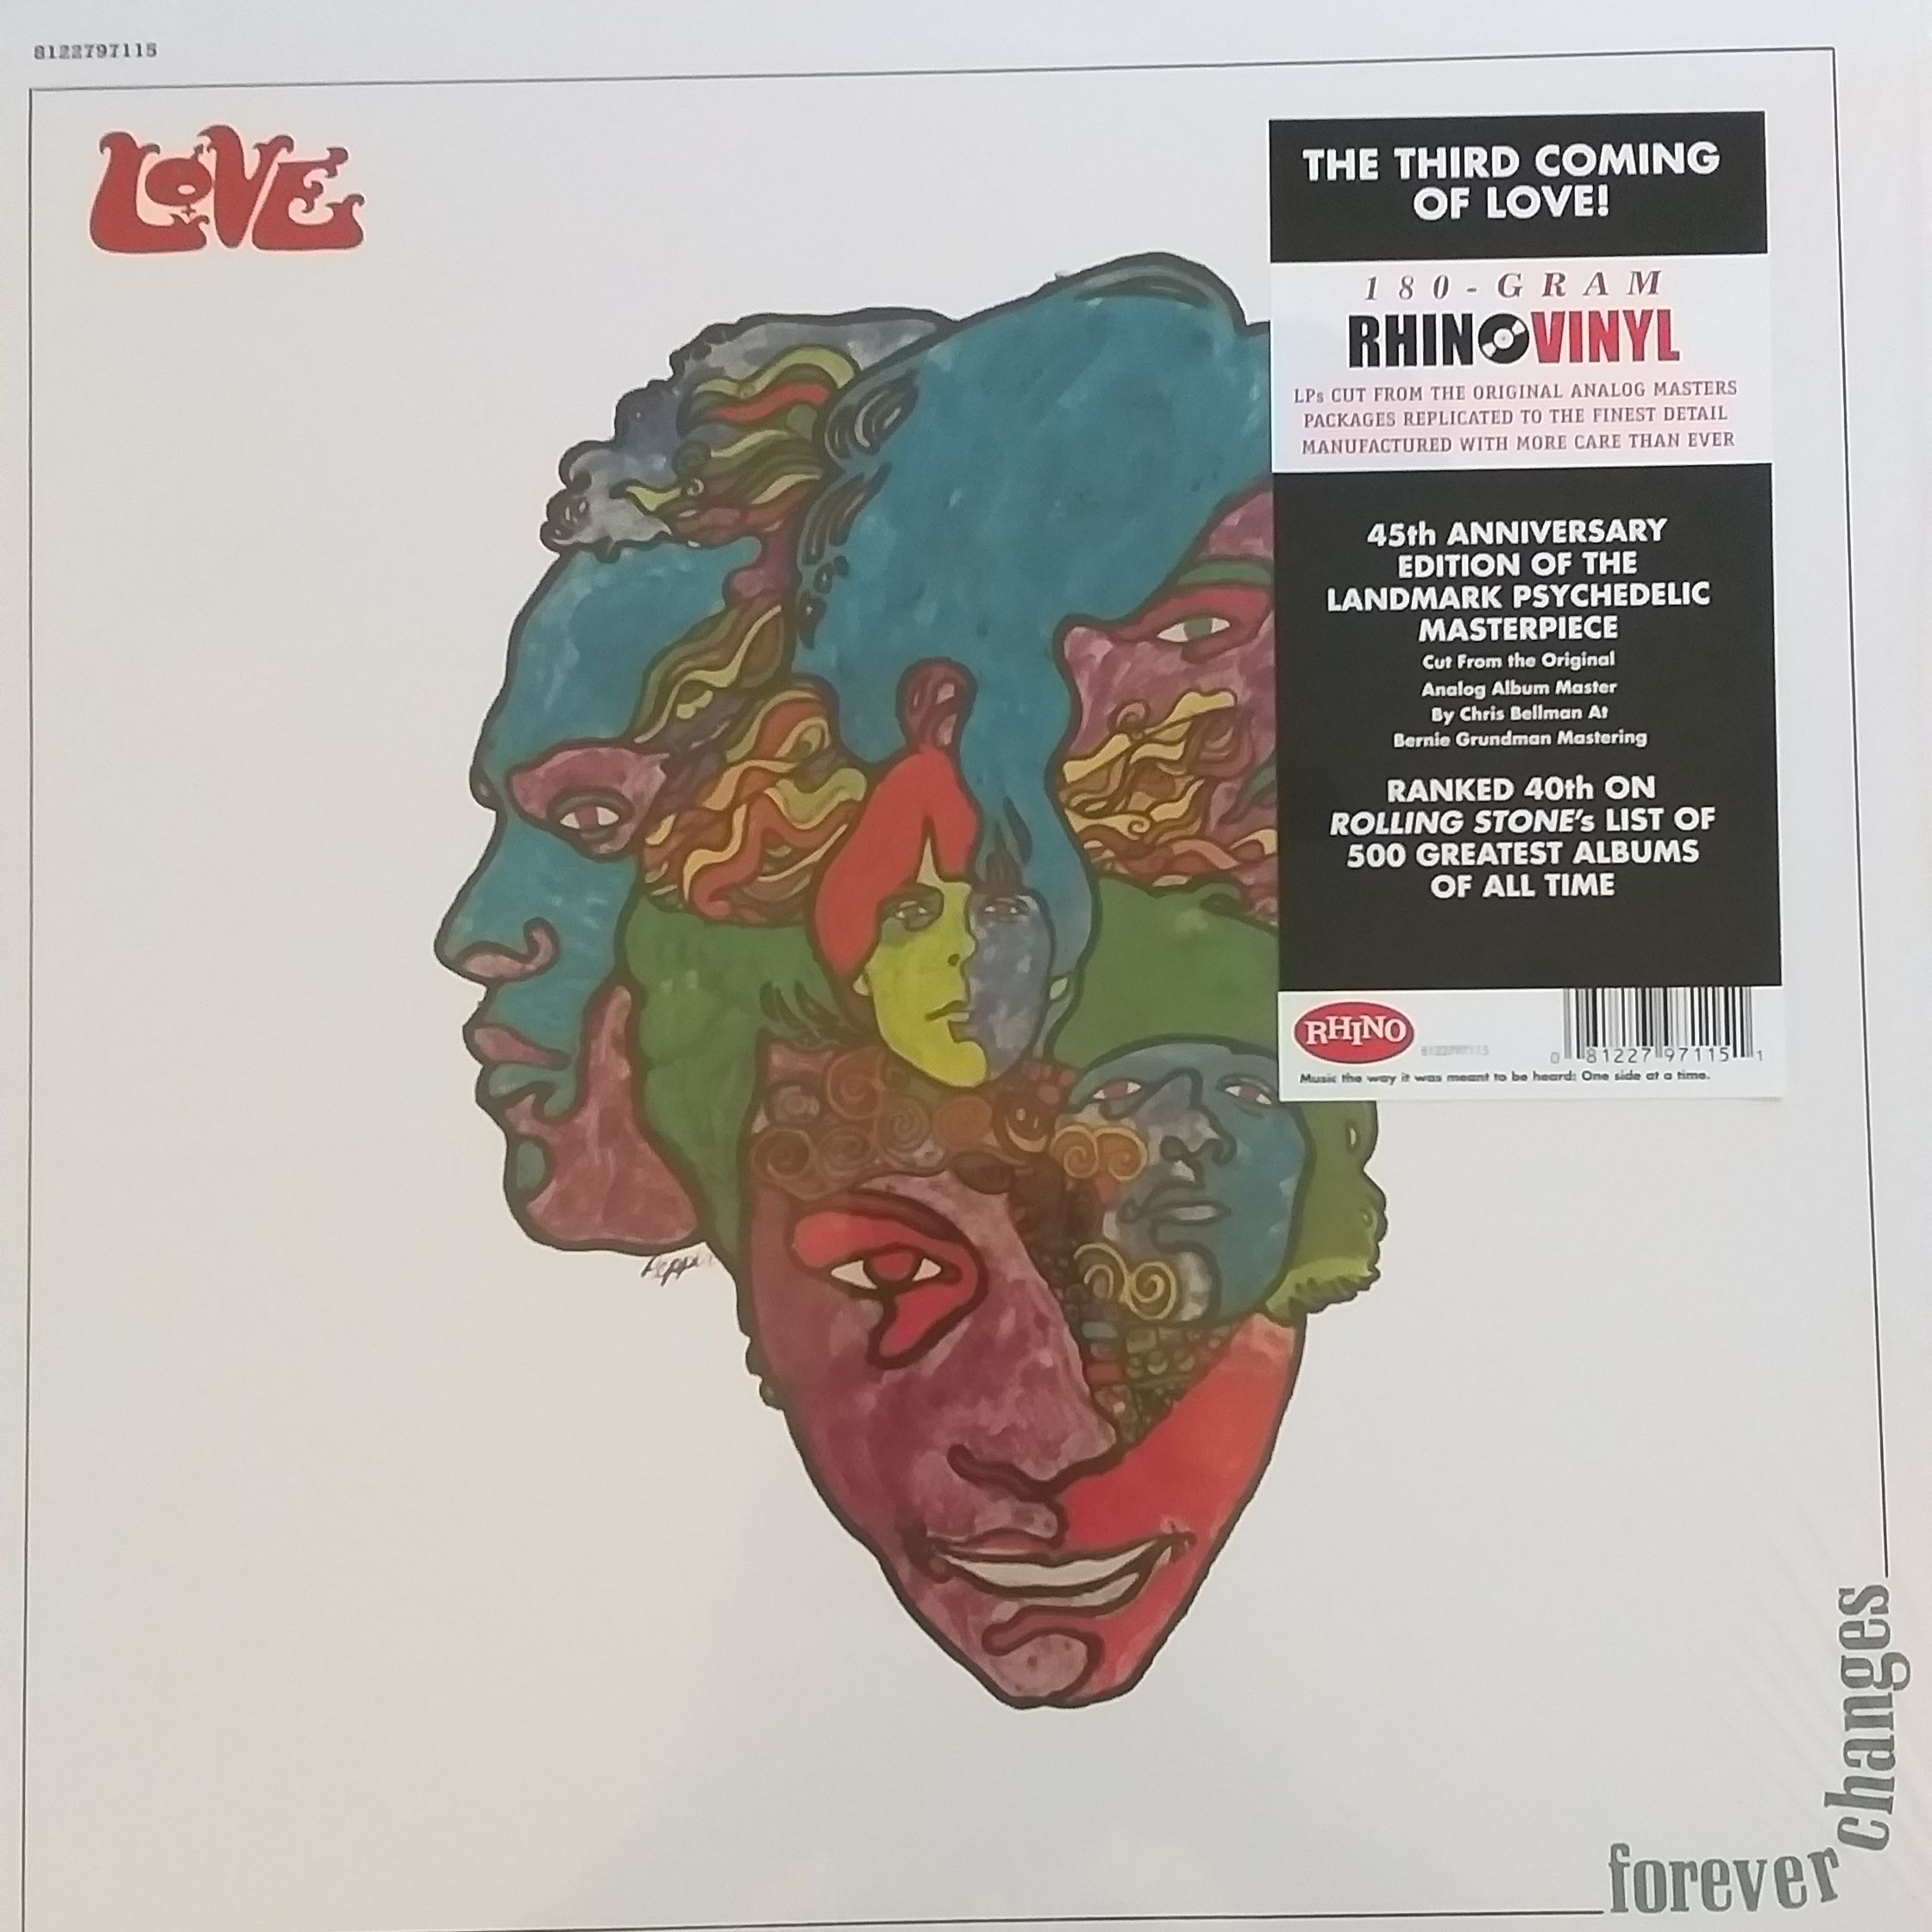 Love Forever changes LP undefined